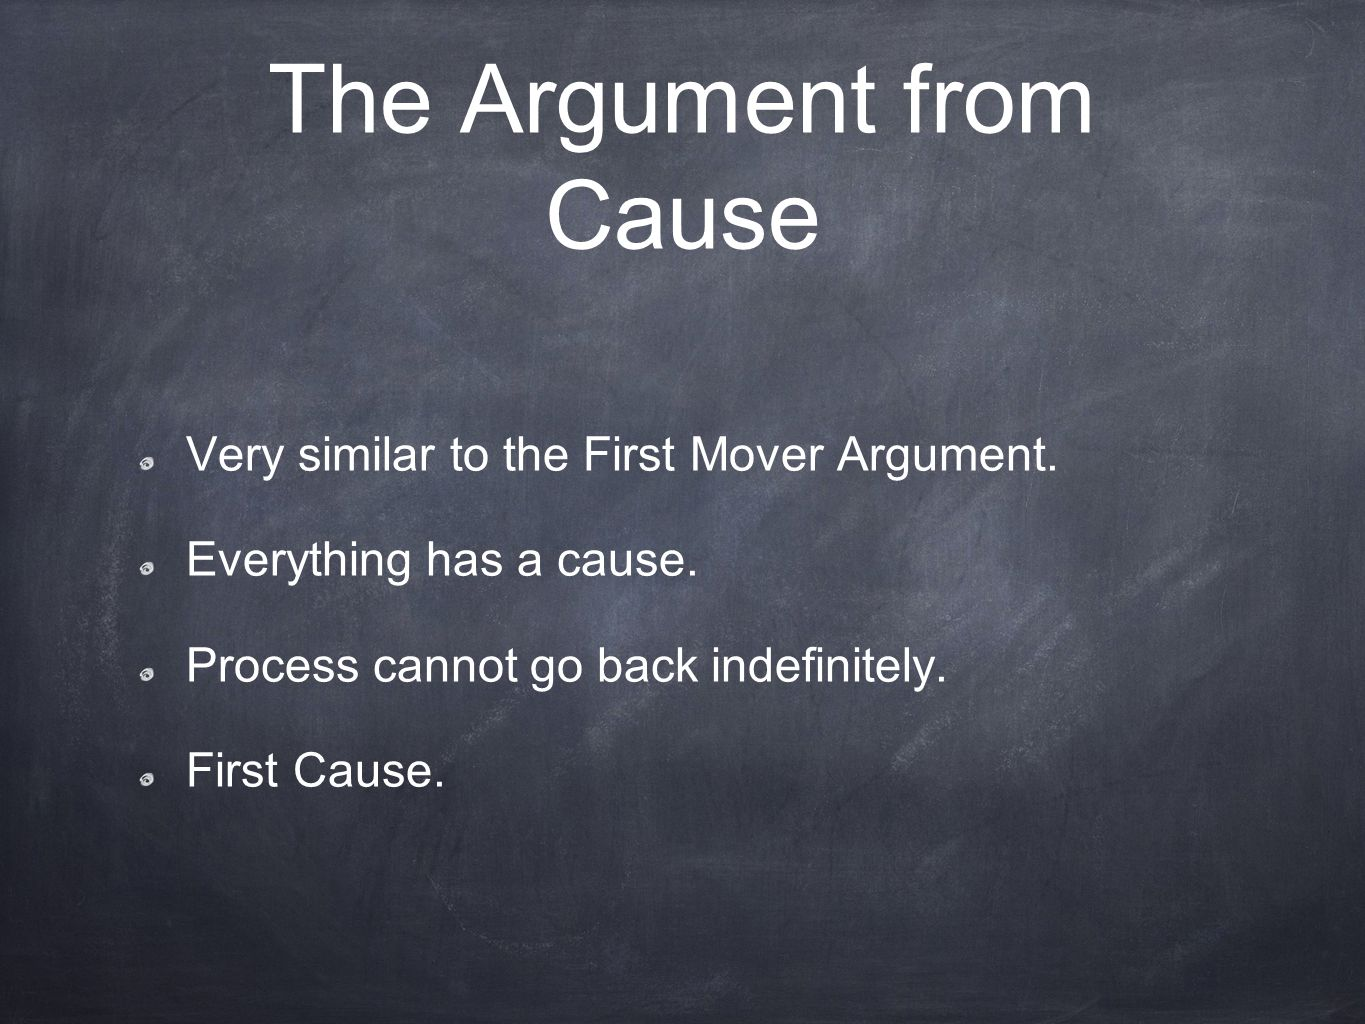 The Argument from Cause